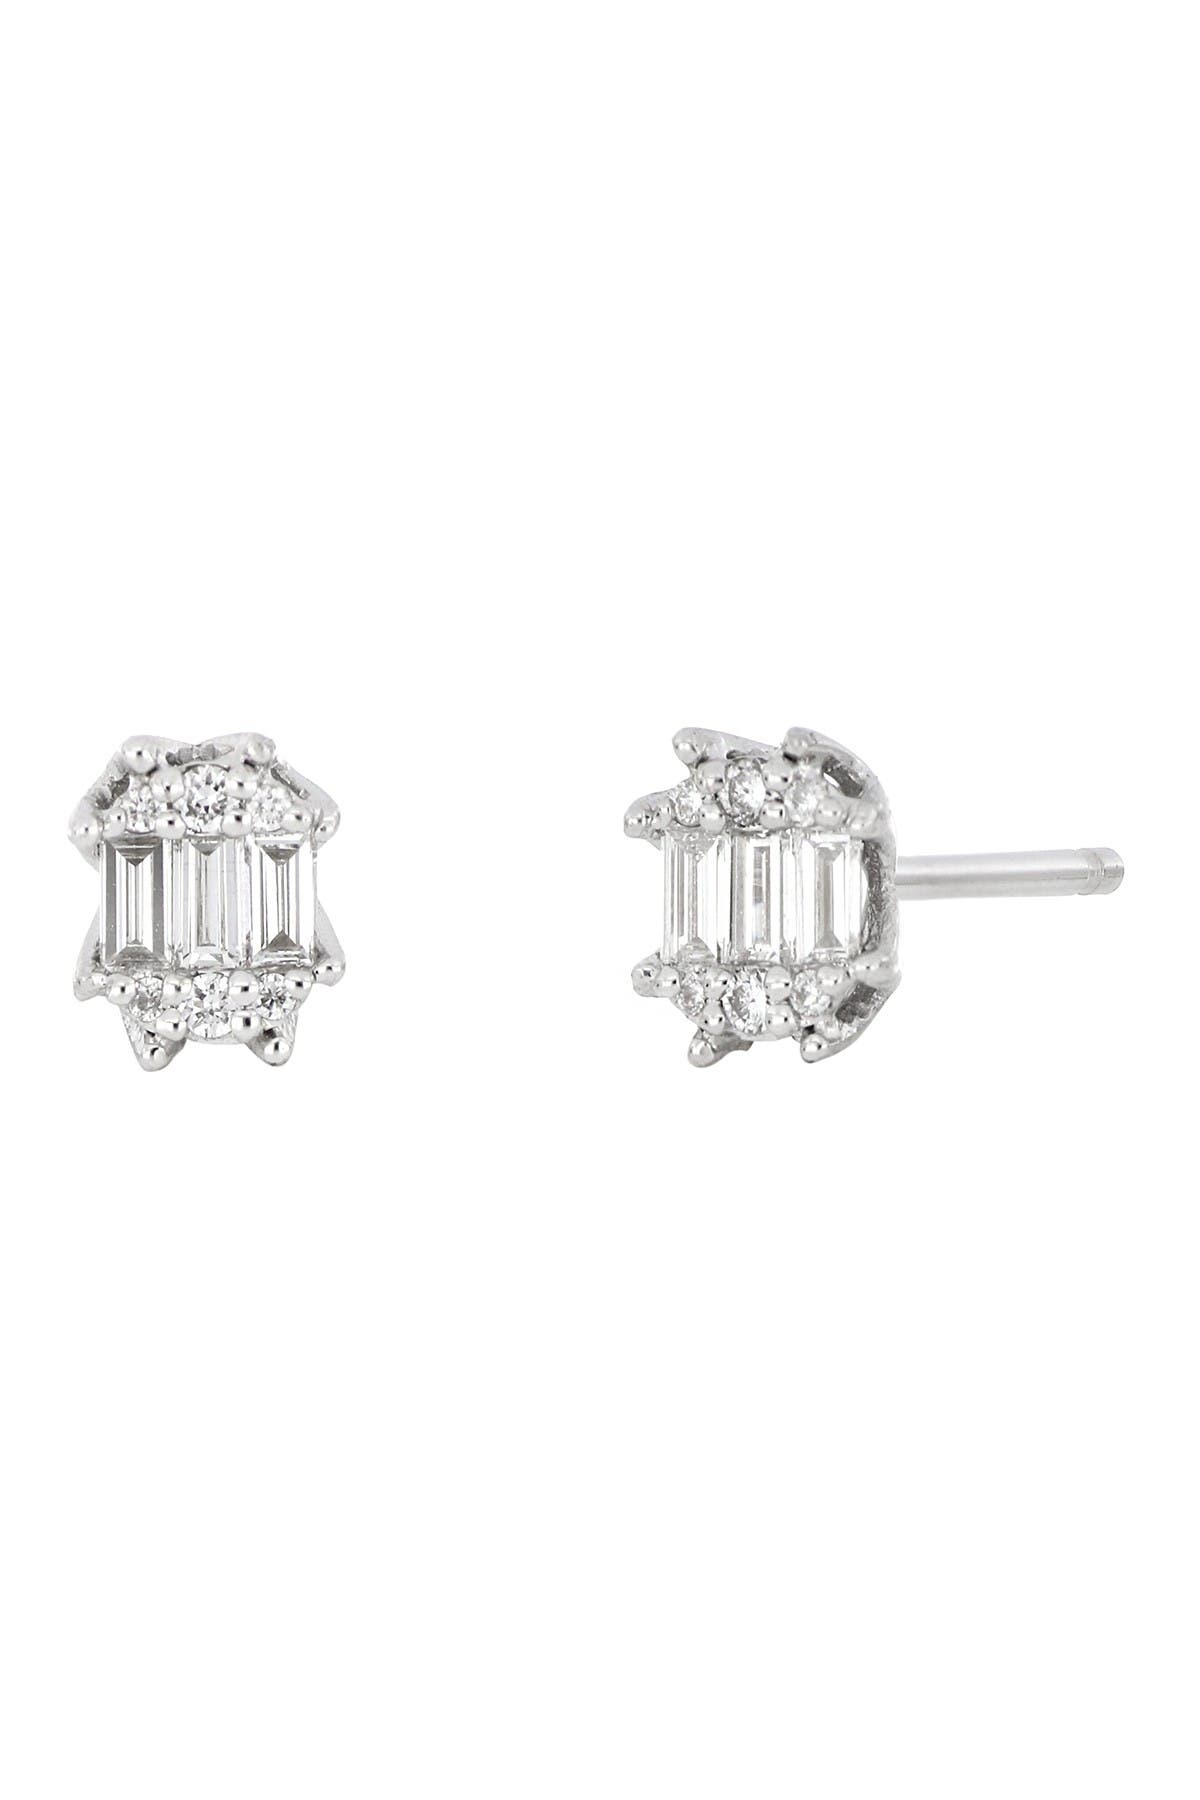 Image of Bony Levy 18k White Gold Petite Gatsby Stud Earrings - 0.18 ctw